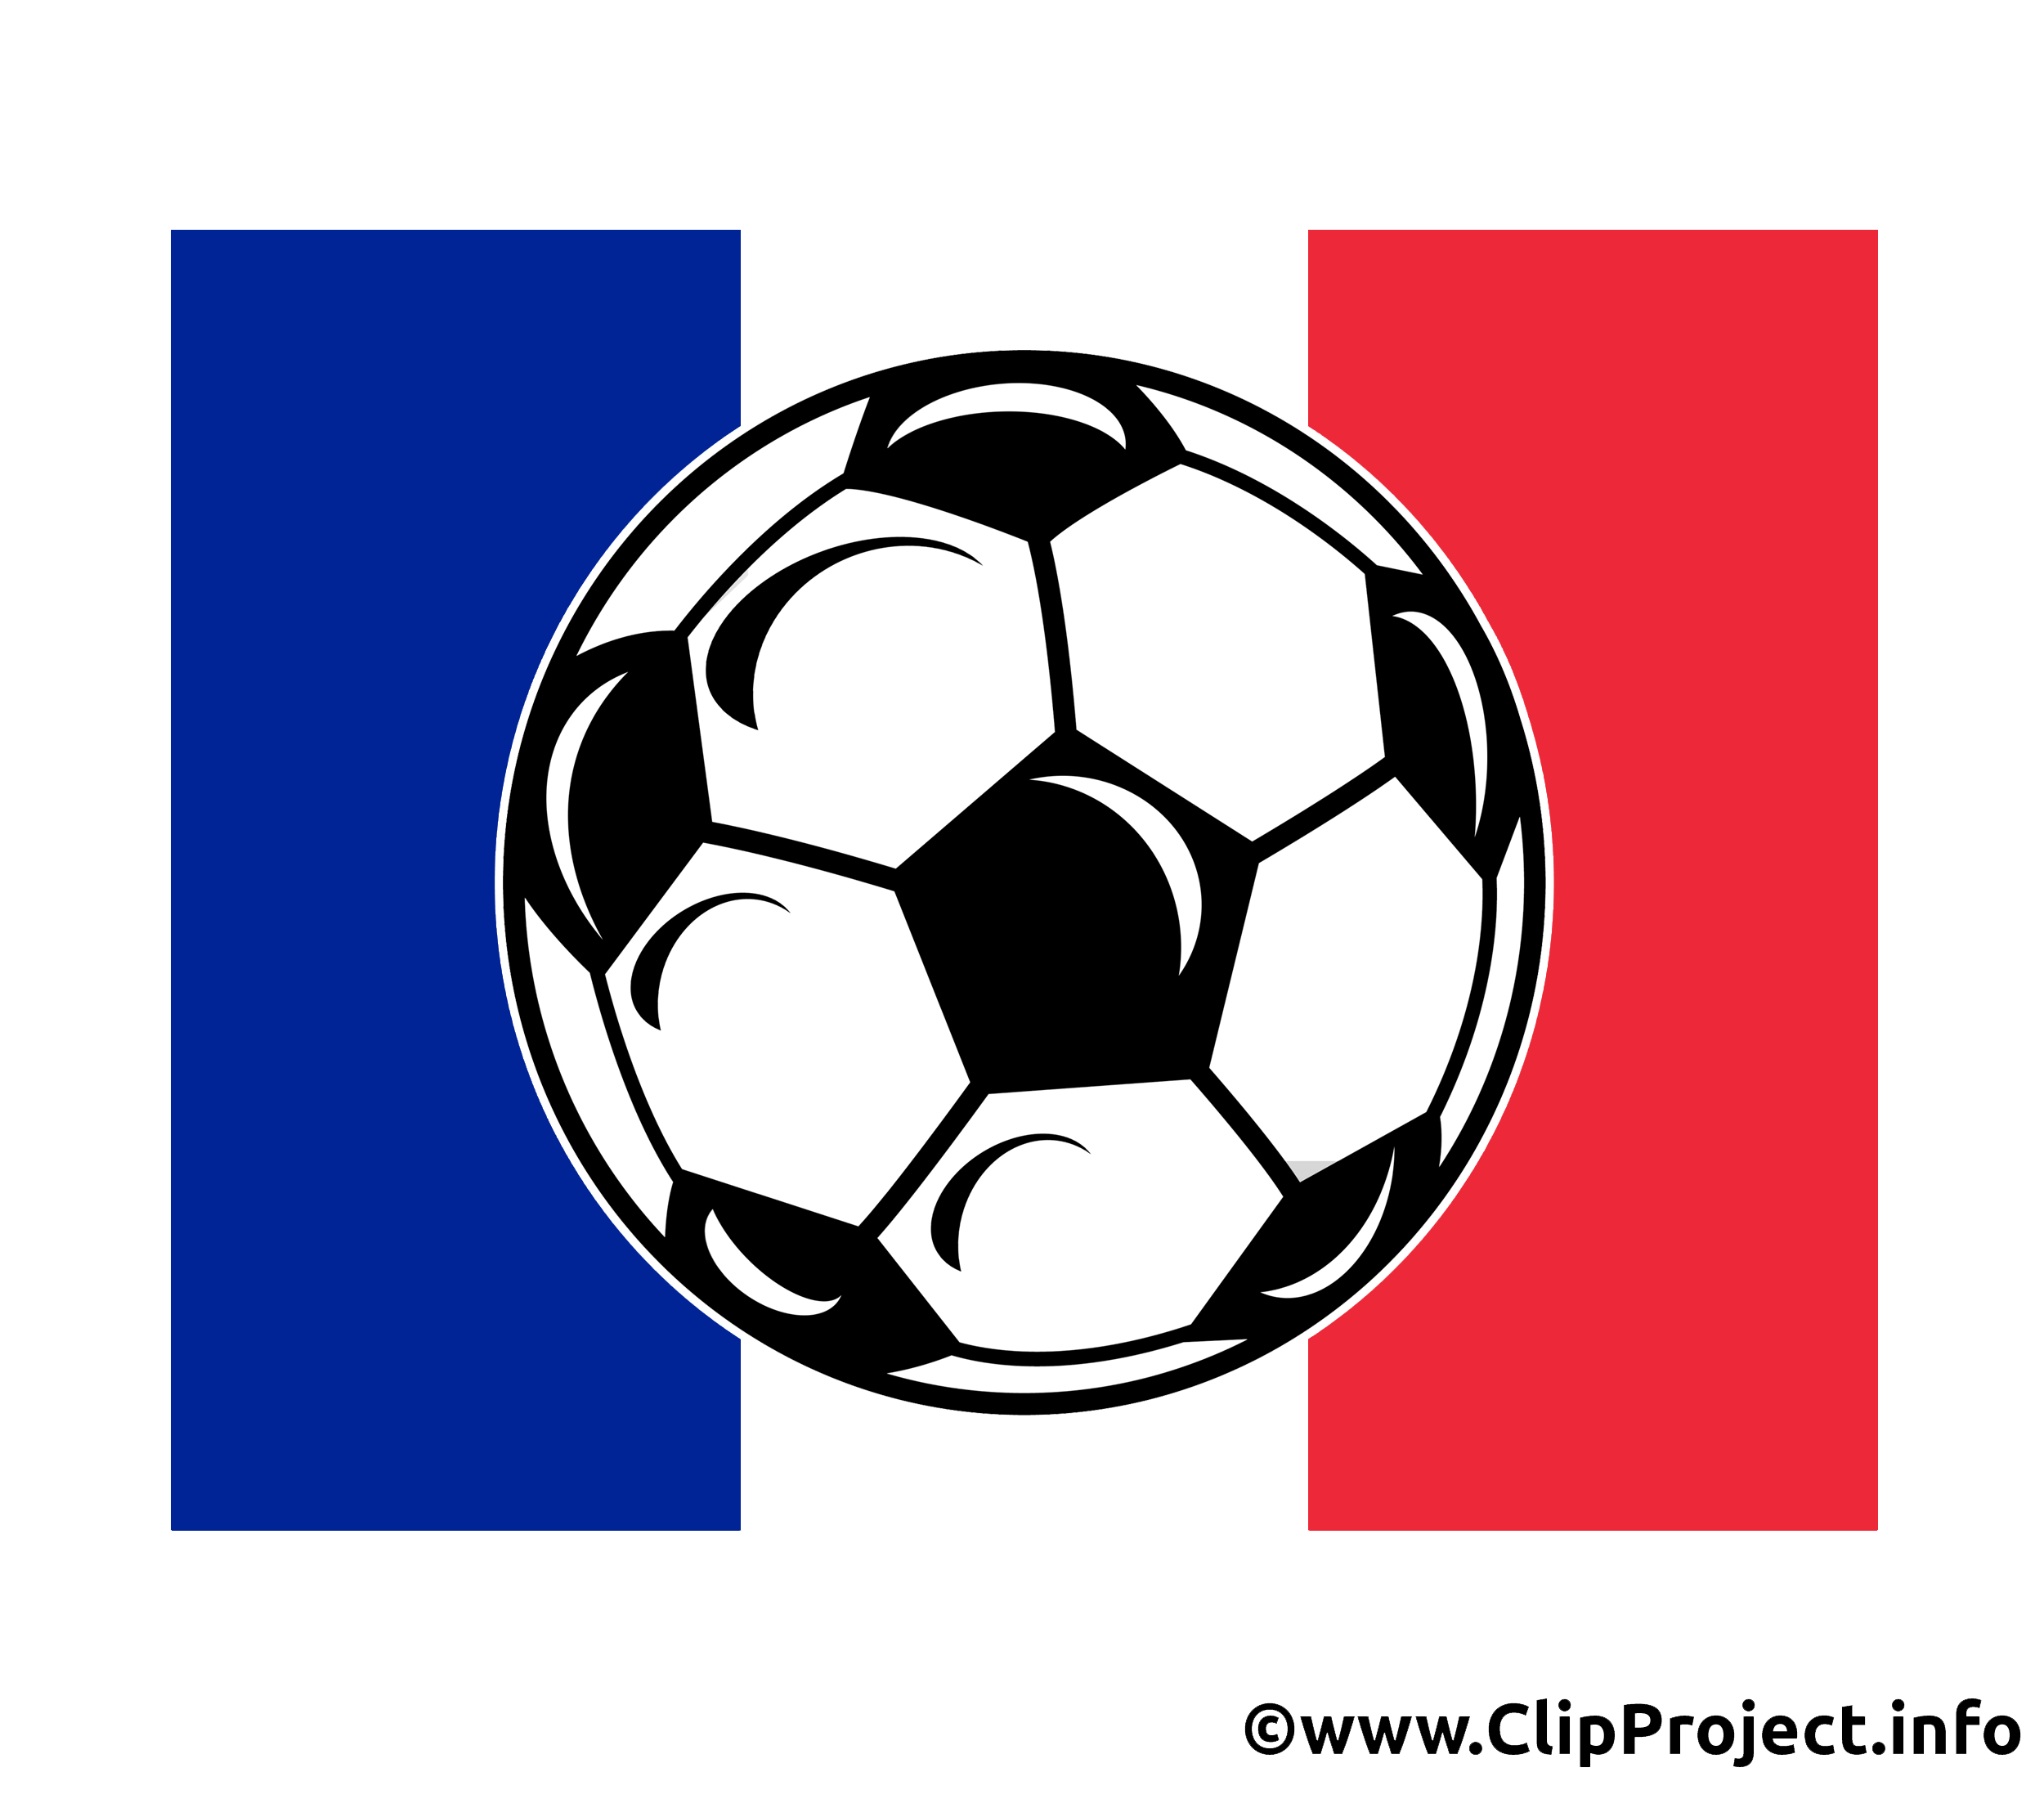 Ballon de foot france clipart gratuit football dessin picture image graphic clip art - France football gratuit ...